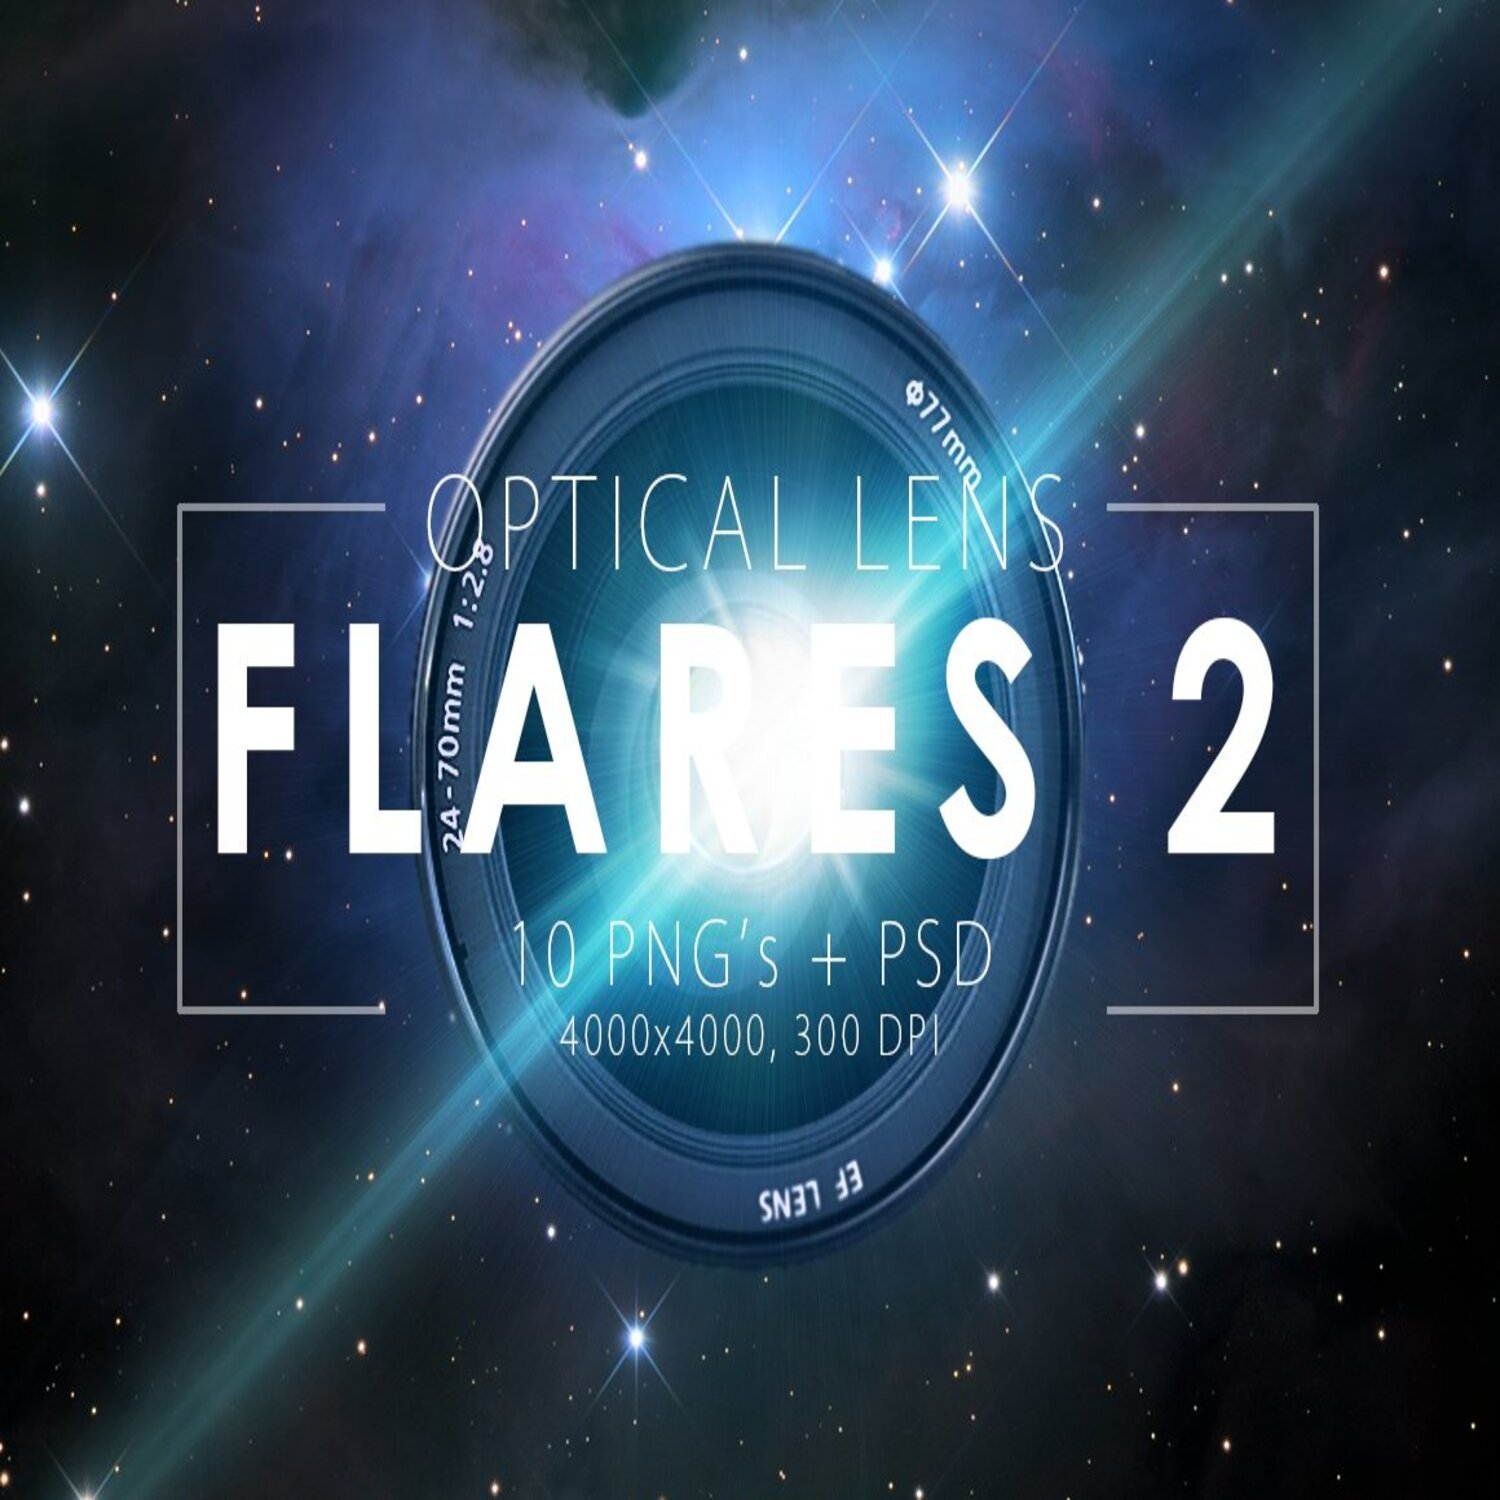 Optical Lens Flares Pack 2 main cover.